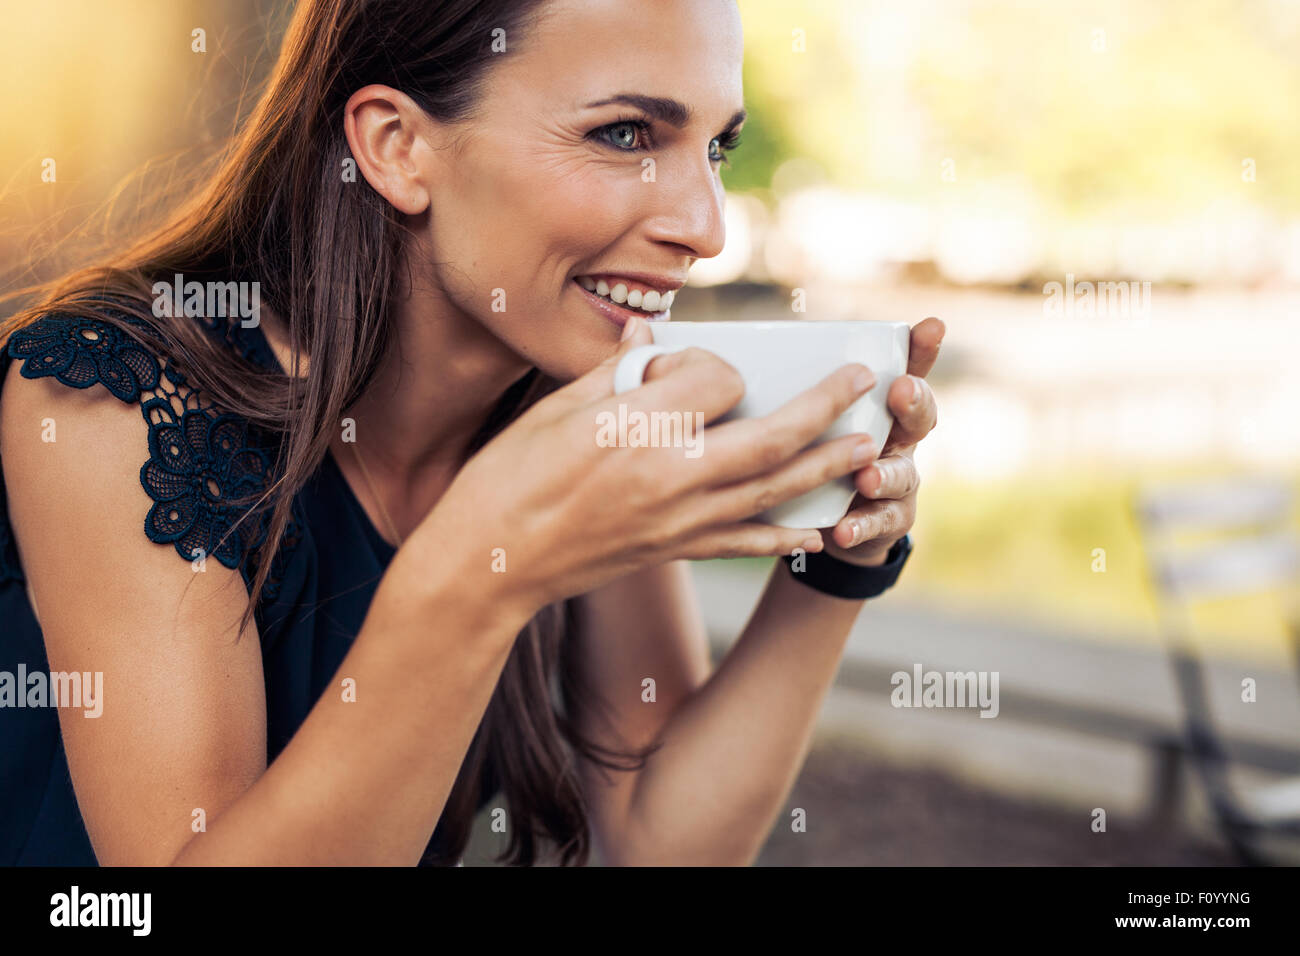 Young woman holding a cup of coffee and looking away smiling. Caucasian female drinking coffee at cafe. - Stock Image